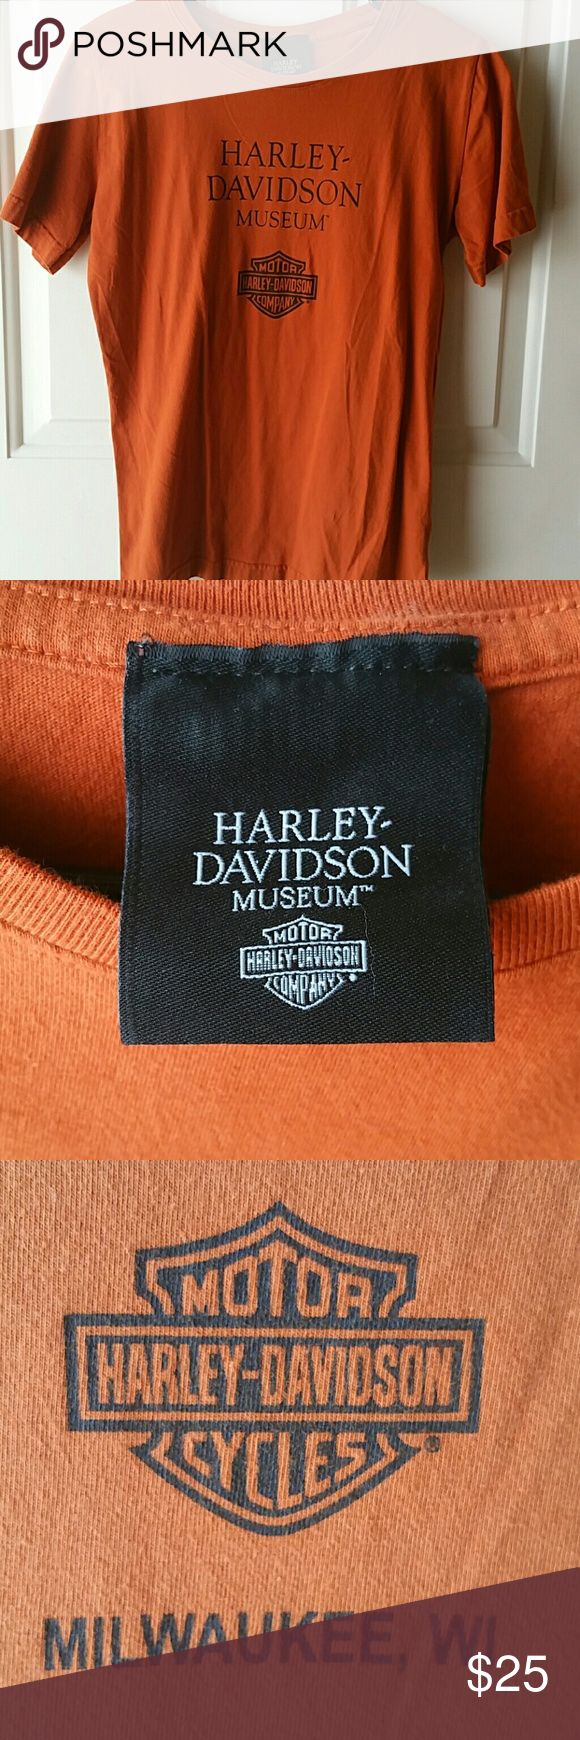 Harley Davidson Museum T-Shirt LIKE NEW Harley Davidson Museum T-Shirt. Size: Medium. Only worn a couple of times. Harley-Davidson Tops Tees - Short Sleeve